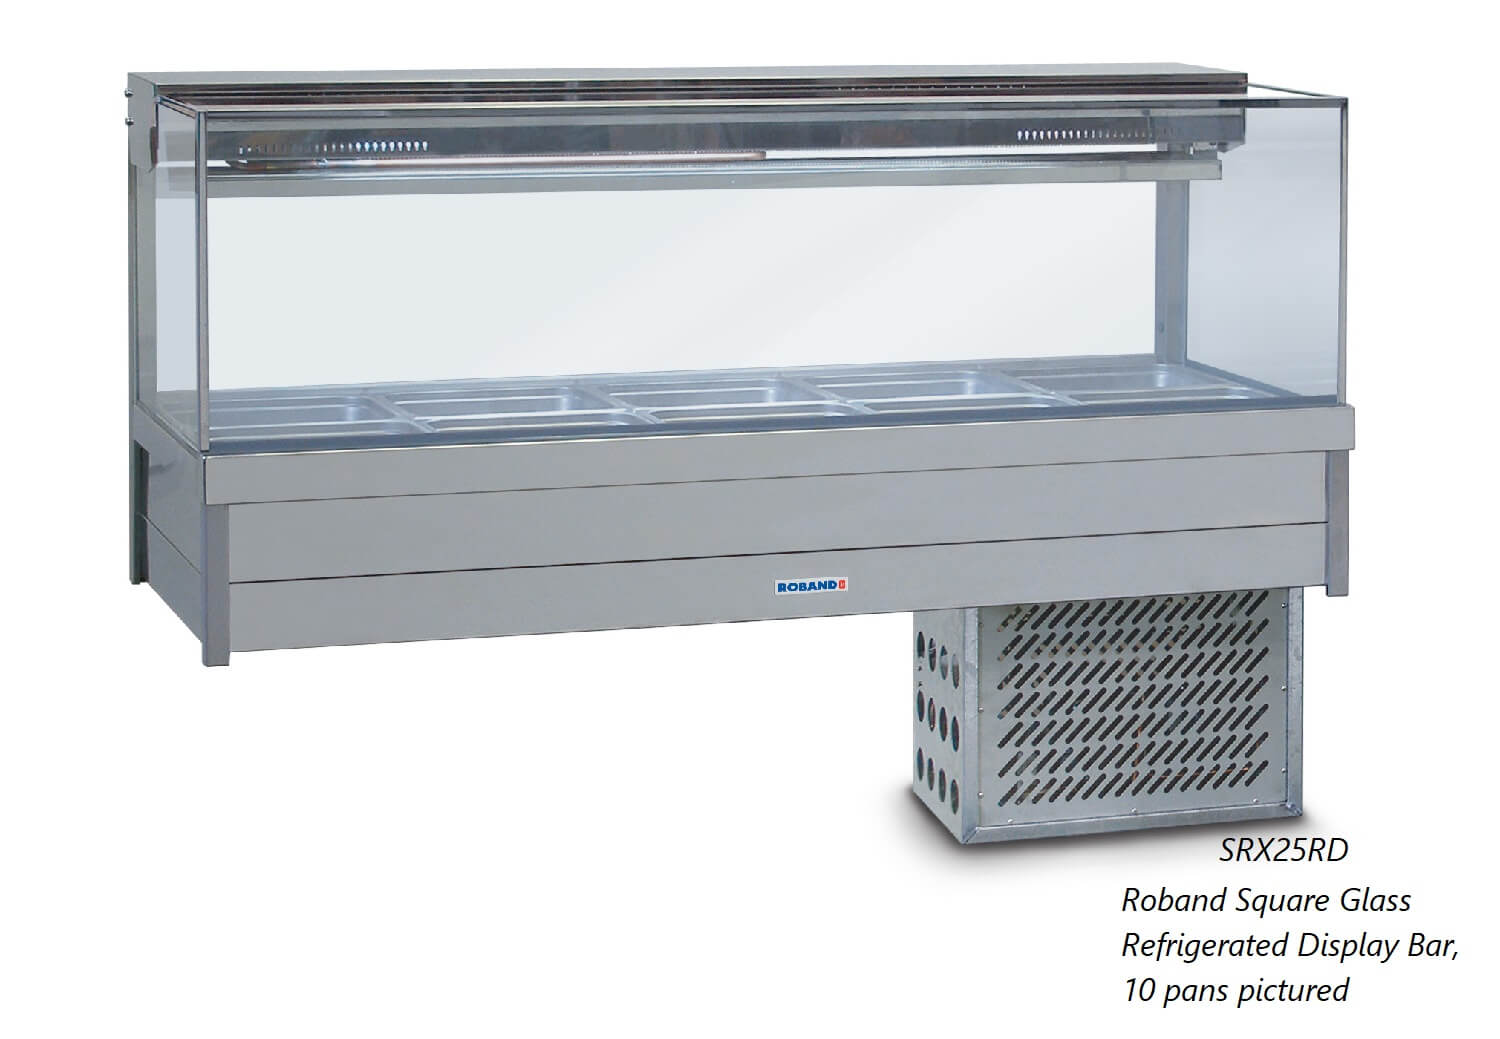 Roband Square Glass Refrigerated Display Bar – Piped and Foamed only (no motor), 12 pans